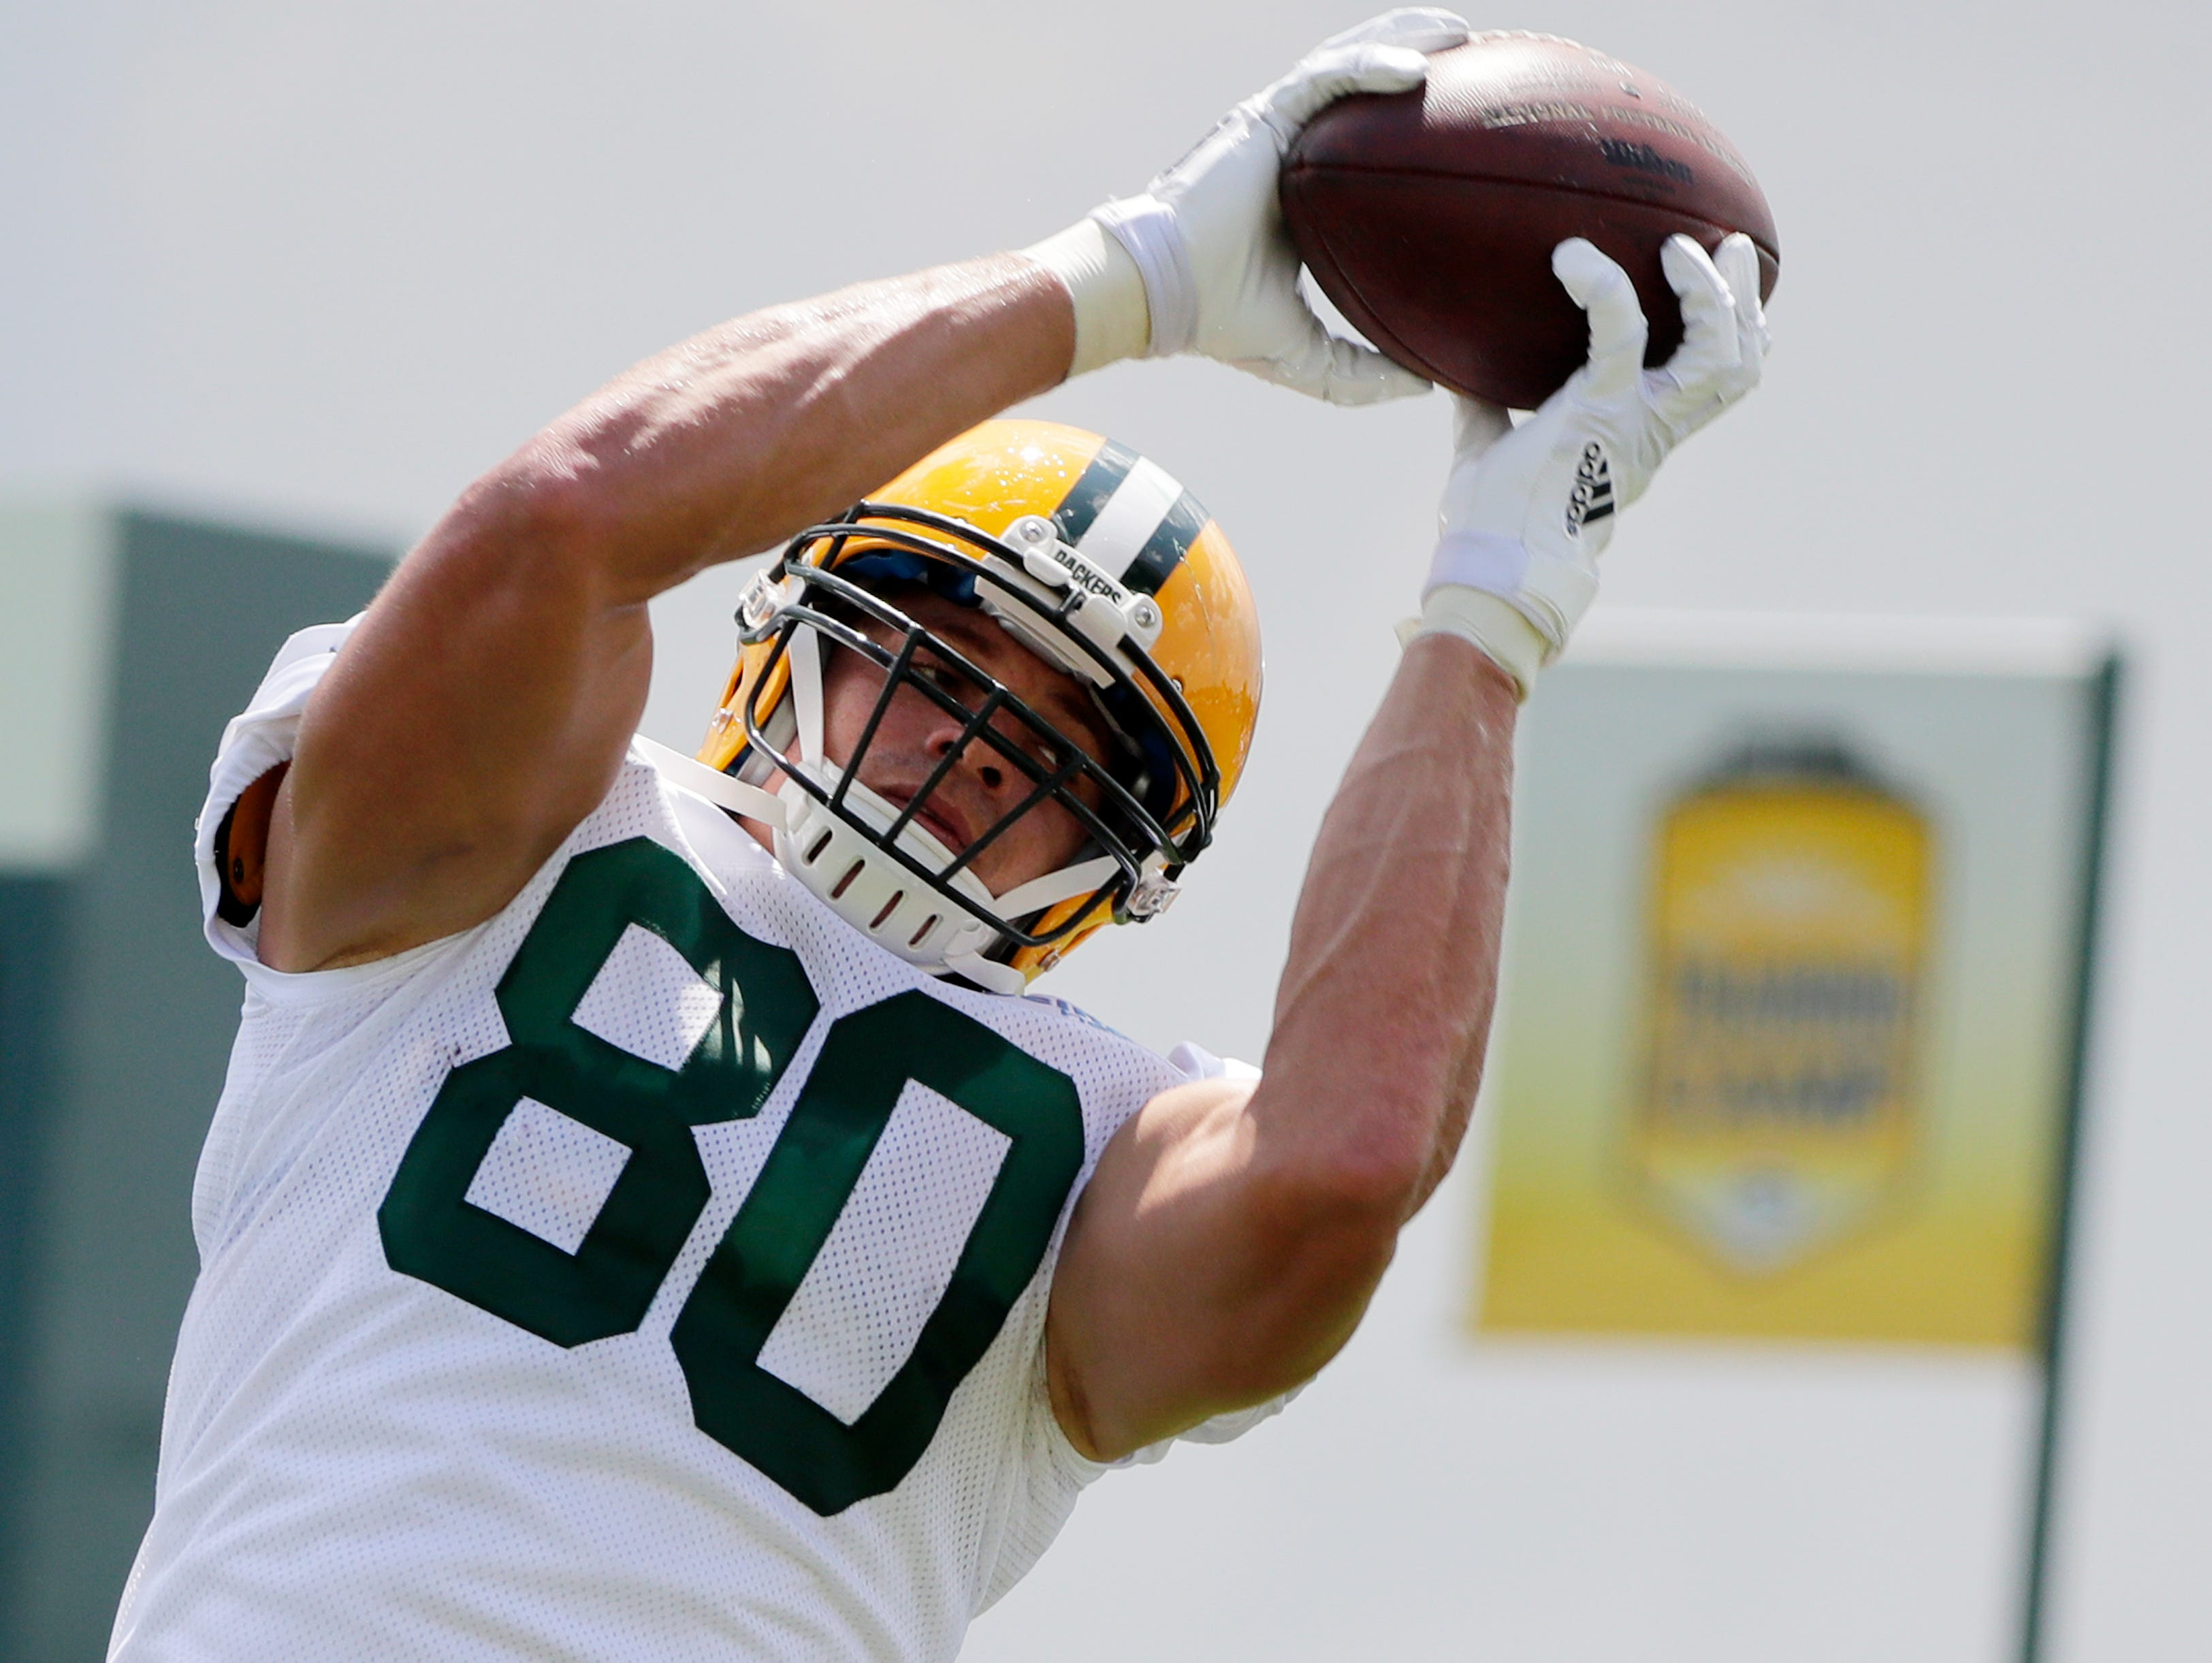 Green Bay Packers tight end Jimmy Graham (80) catches a ball during training camp practice at Ray Nitschke Field on Monday, July 30, 2018 in Ashwaubenon, Wis. Adam Wesley/USA TODAY NETWORK-Wisconsin